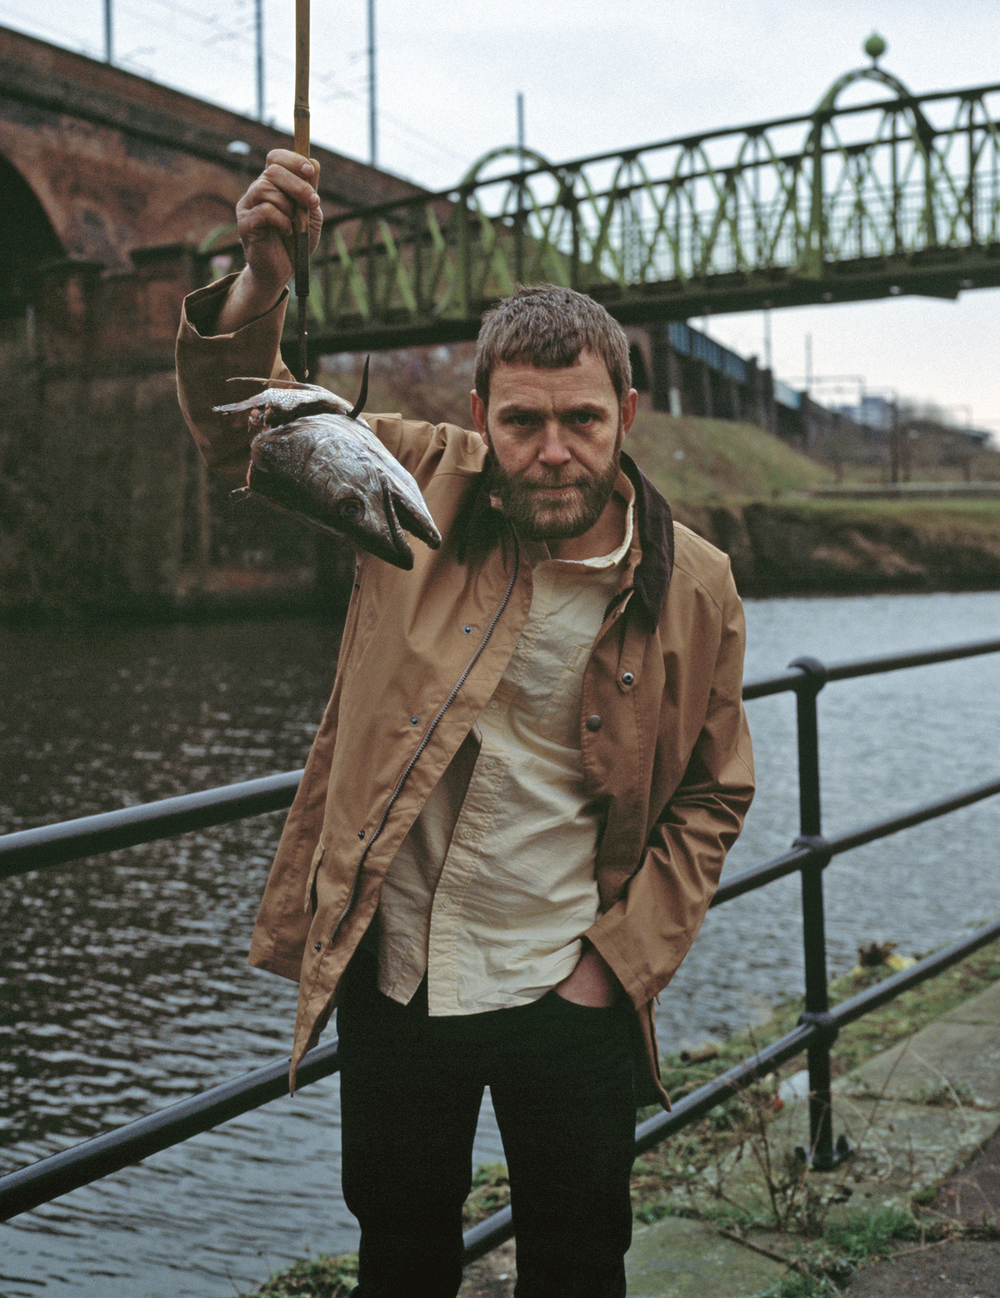 Jacket by Barbour, shirt by Beams+, fish head on a hook – model's own